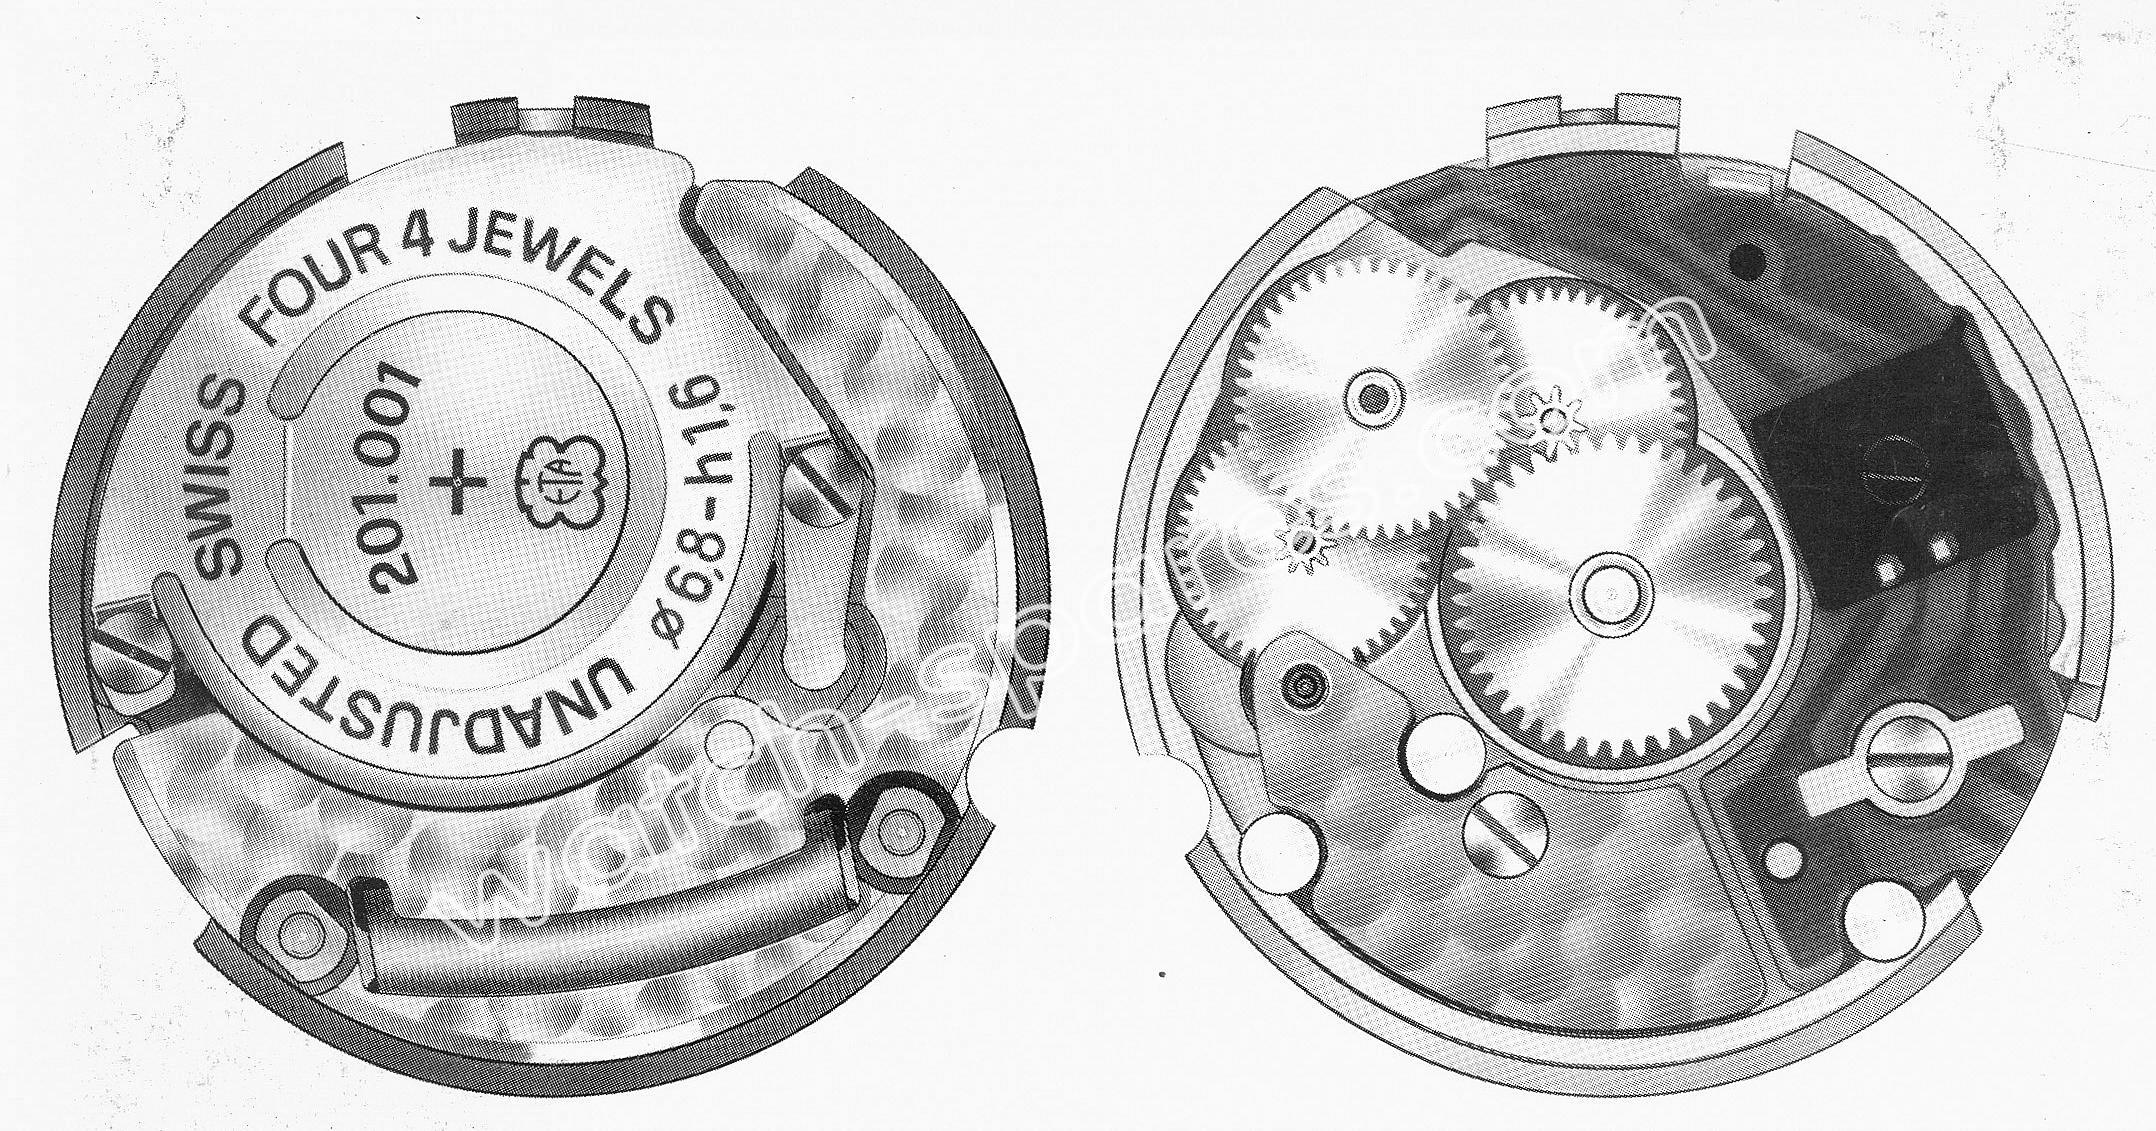 ETA 201.001 watch movements